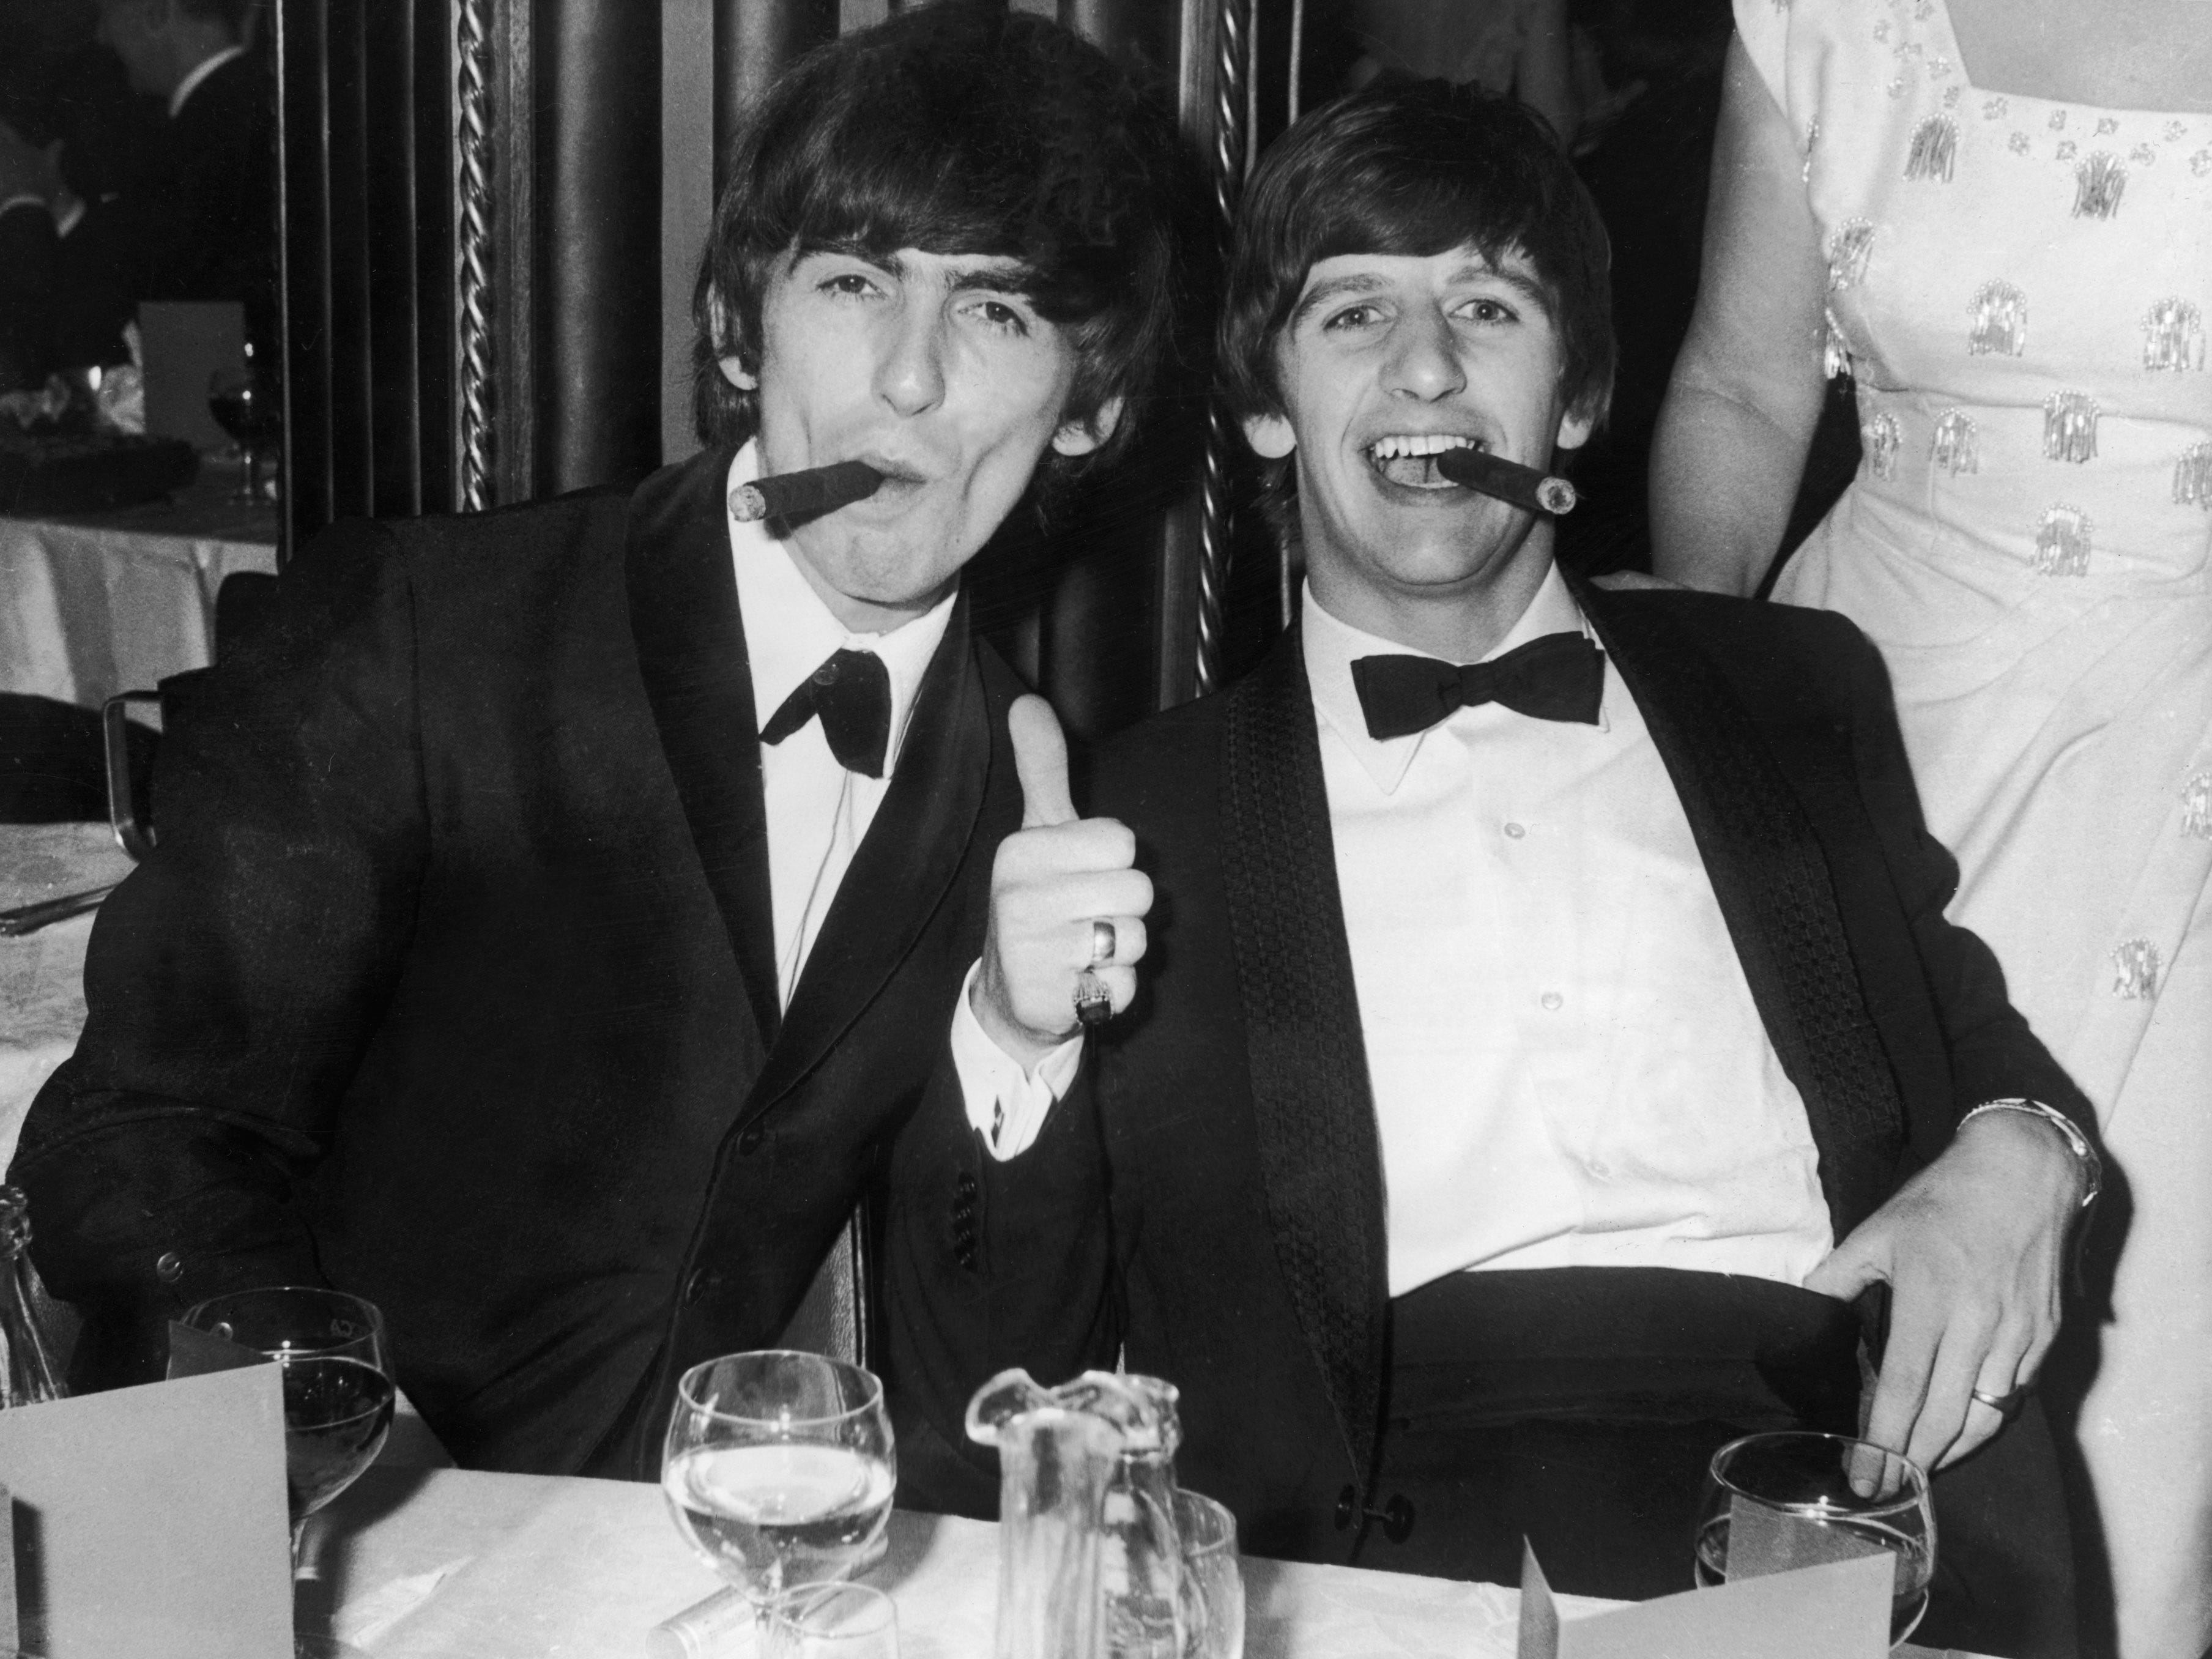 George Harrison and Ringo Starr smoke cigars in tuxedos after the presentation of the Carl Allen Awards March 23, 1964 in London.